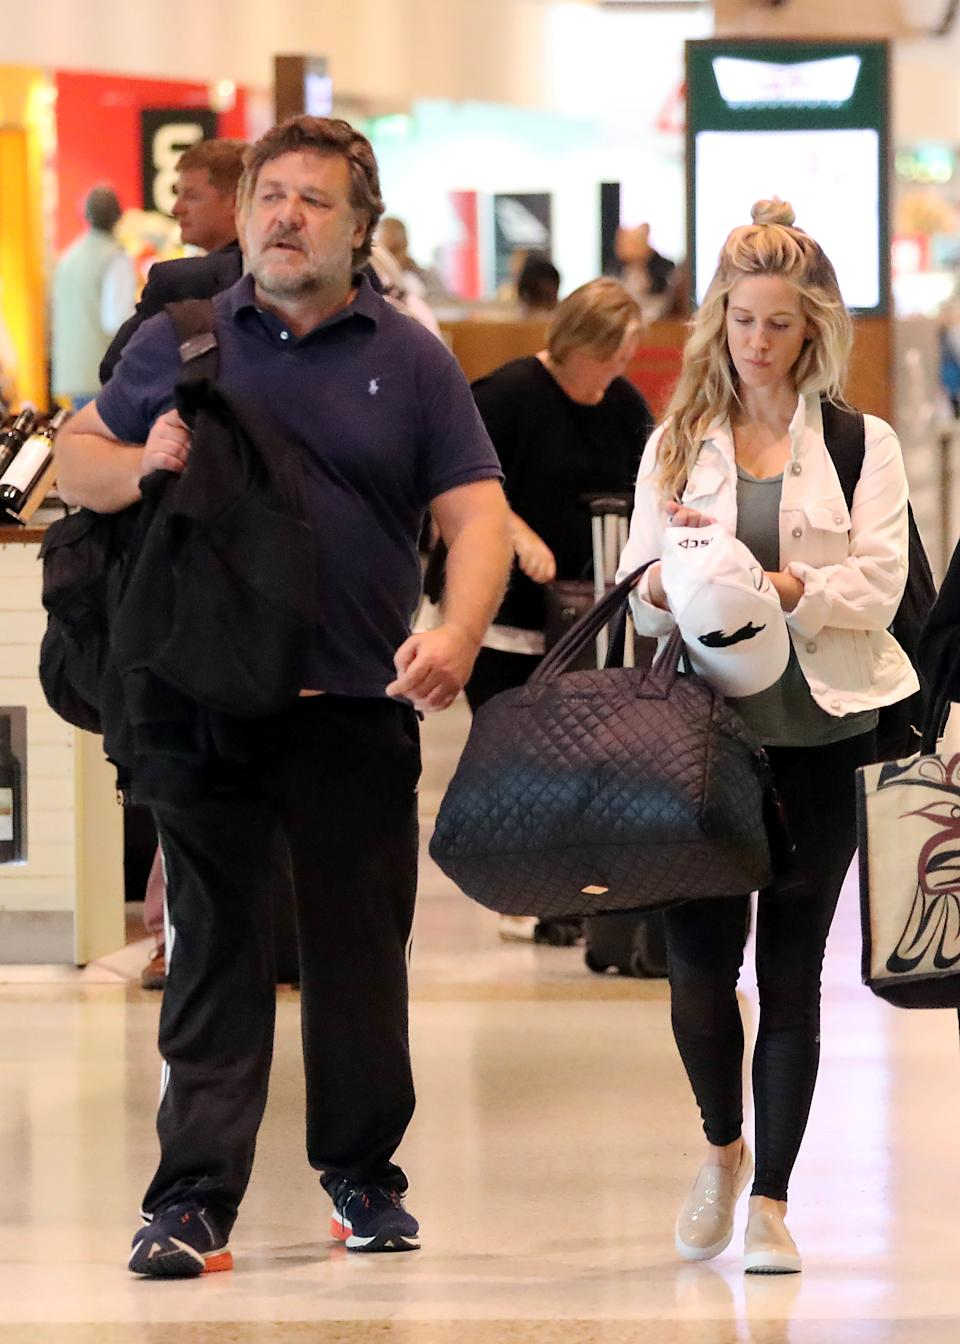 Russell Crowe and Britney Theriot touched down in Sydney on Friday. Photo: Diimex